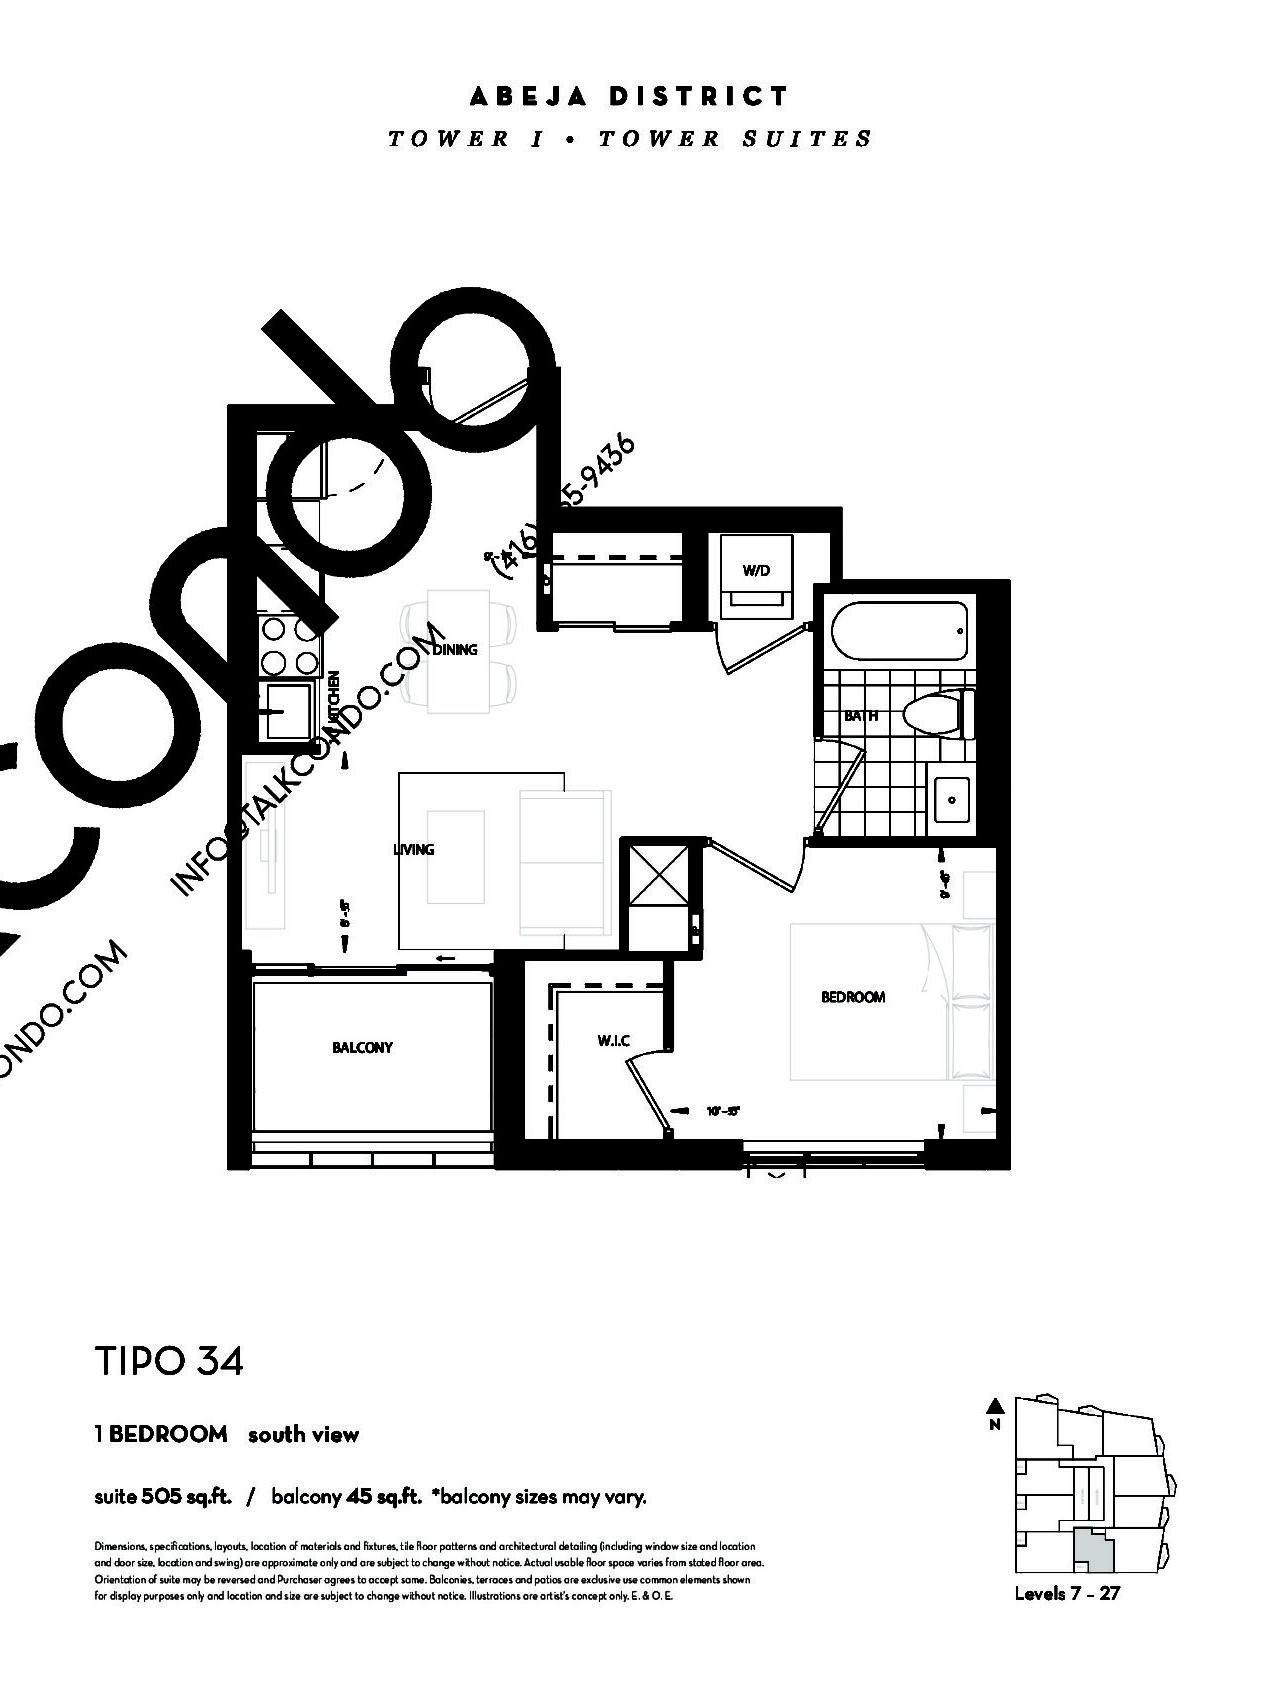 TIPO 34 (Tower) Floor Plan at Abeja District Condos - 505 sq.ft